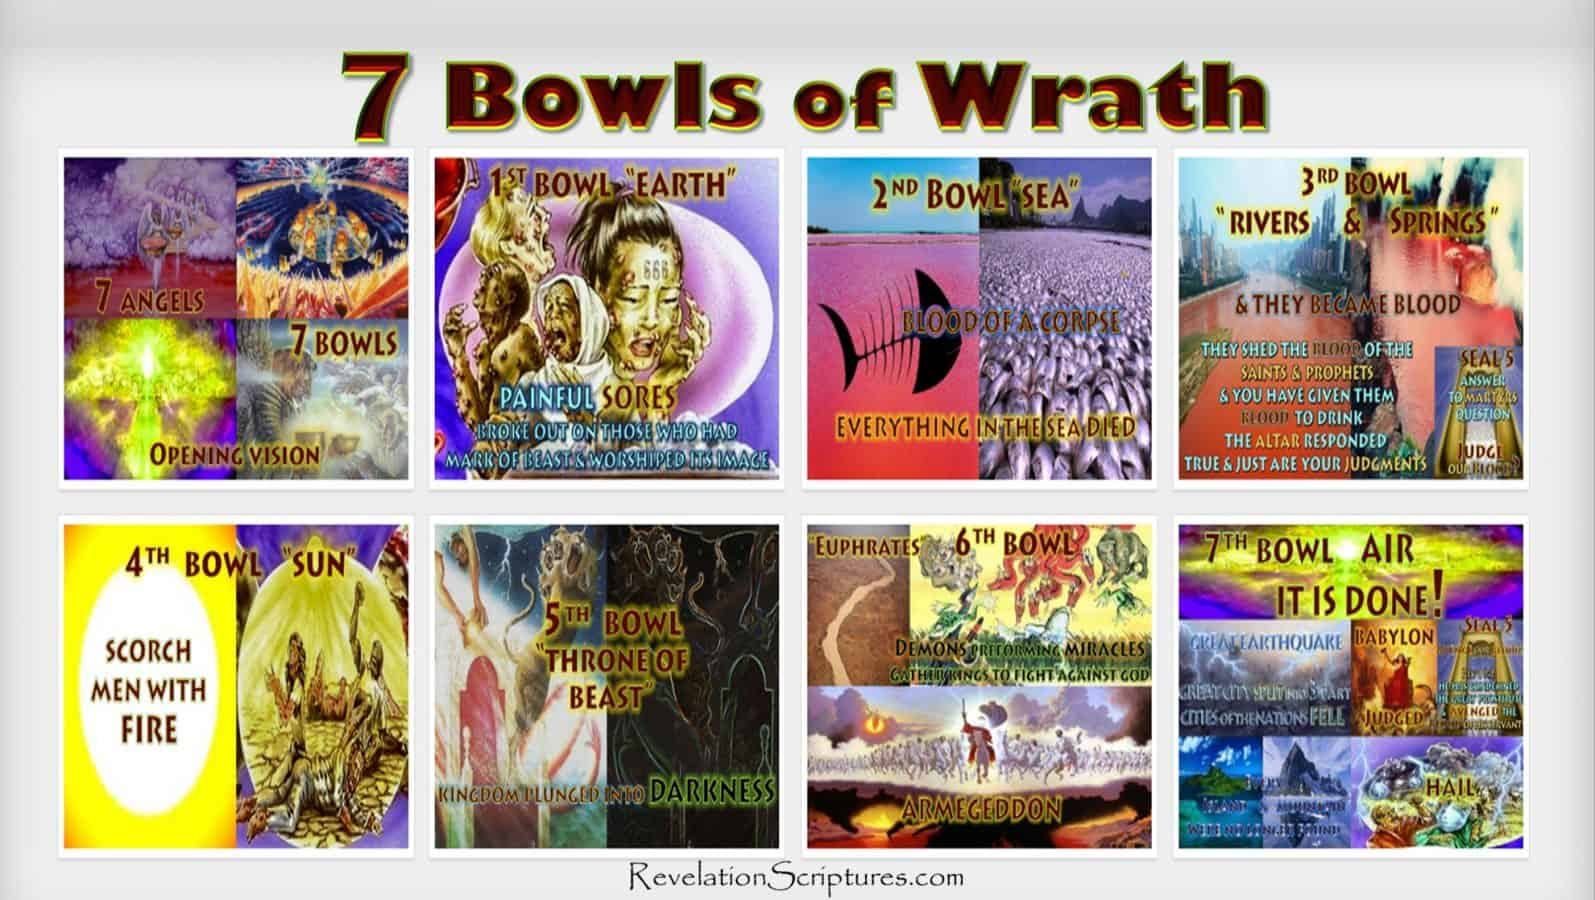 7 Angles,7 last Plagues,7 Final Plagues,Curses,7 Golden Bowls,Day of Wrath,Day of Vengeance,Anger,7 Vials of Wrath,7 Bowls of Wrath,Book of Revelation,Revelation 15,Revelation 16,Revelation Chapter 15,Revelation Chapter 16,Seven Vials of Wrath,7 Vials,7 Bowls,Seven Bowls,wrath,Picture Gallery,Book of Revelation,First Vial,Second Vial,Third Vial,Fourth Vial,Fifth Vial,Sixth Vial,Seventh Vial,Chapter 15,Chapter 16,Chapter 19,Armageddon,7 Bowls of Wrath,First Bowl,Earth,Land,Second Bowl,Sea,Third Bowl,Rivers,Springs,Water,Blood,Fourth Bowl,Sun,Scorch,Fire,Fifth Bowl,Throne of Beast,Darkness,Sixth Bowl,Euphrates,Armageddon,Seventh Bowl,Air,it is done,it is finished